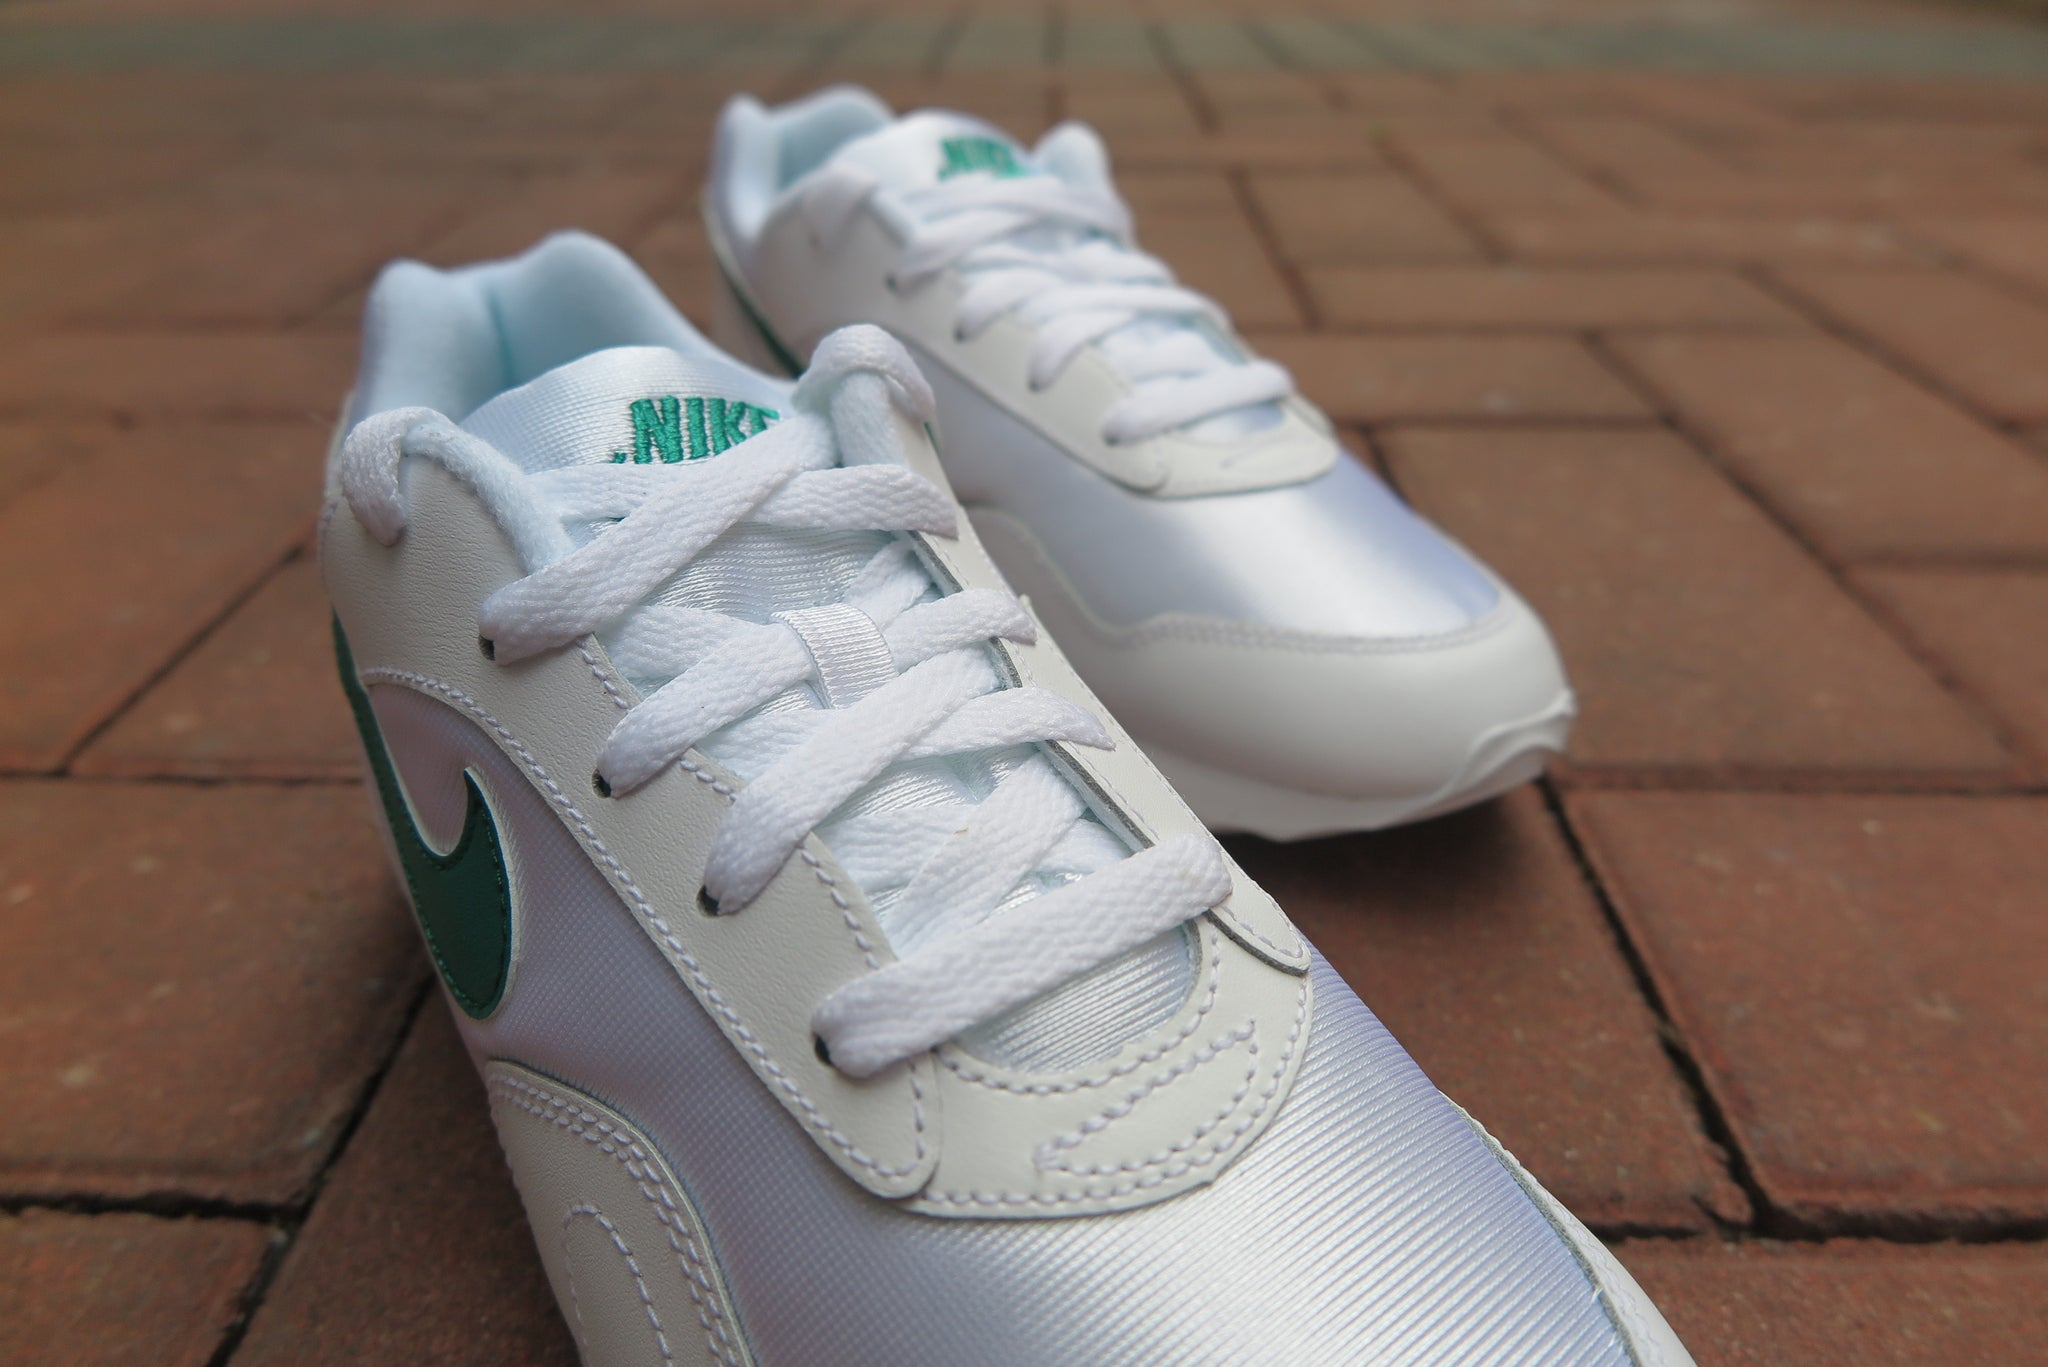 Nike WMNS Outburst OG - White/Opal Green #AR4669-102-Preorder Item-Navy Selected Shop